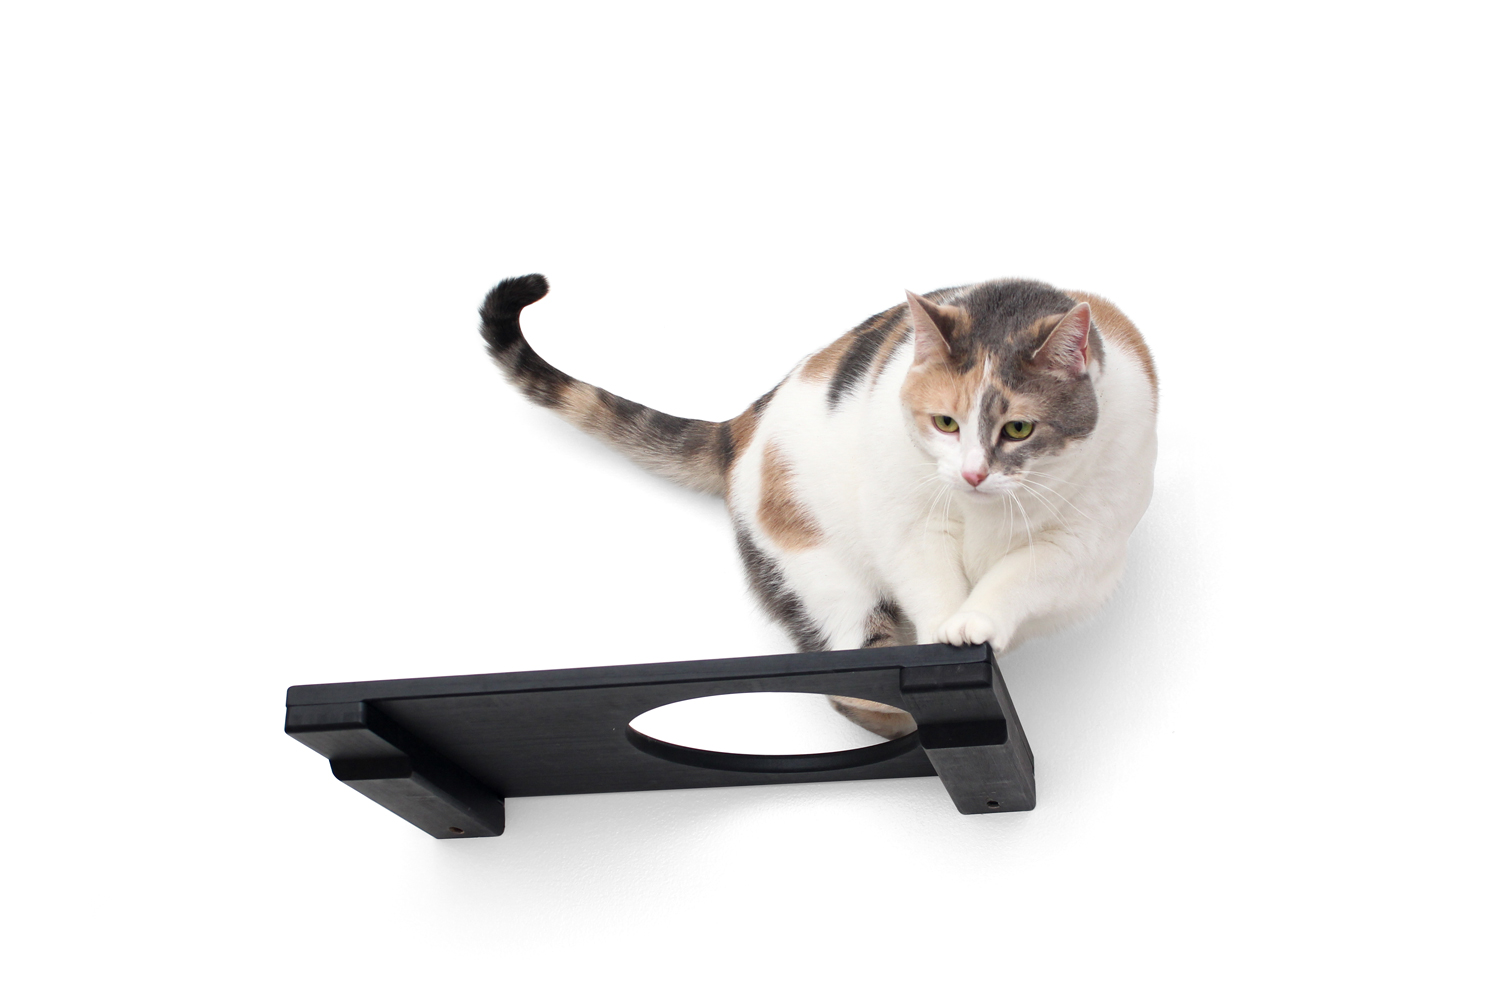 wall mounted 18 inch escape hatch with calico cat